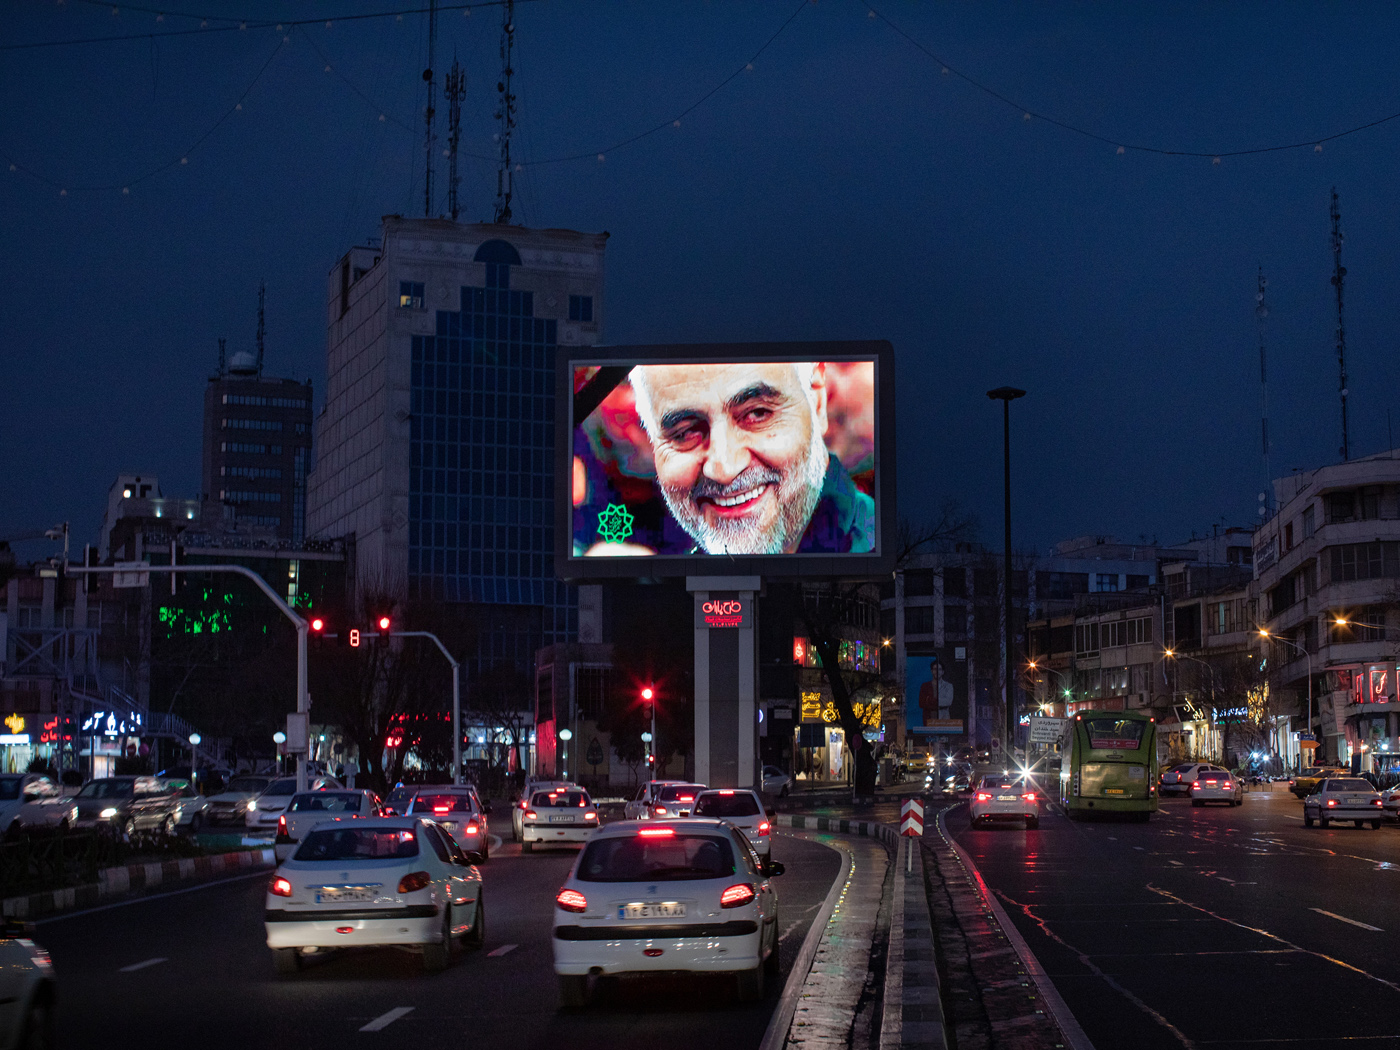 A giant digital billboard in Haft-e Tir square in central Tehran runs a picture of assassinated Revolutionary Guards Major General Qassim Suleimani as the evening traffic unfolds. Following the US-led assassination of the Al-Quds brigade commander through a drone strike in Iraq the prior night, the Supreme Leader of the Islamic Republic of Iran, Ayatollah Ali Khamenei declared three days of public mourning.